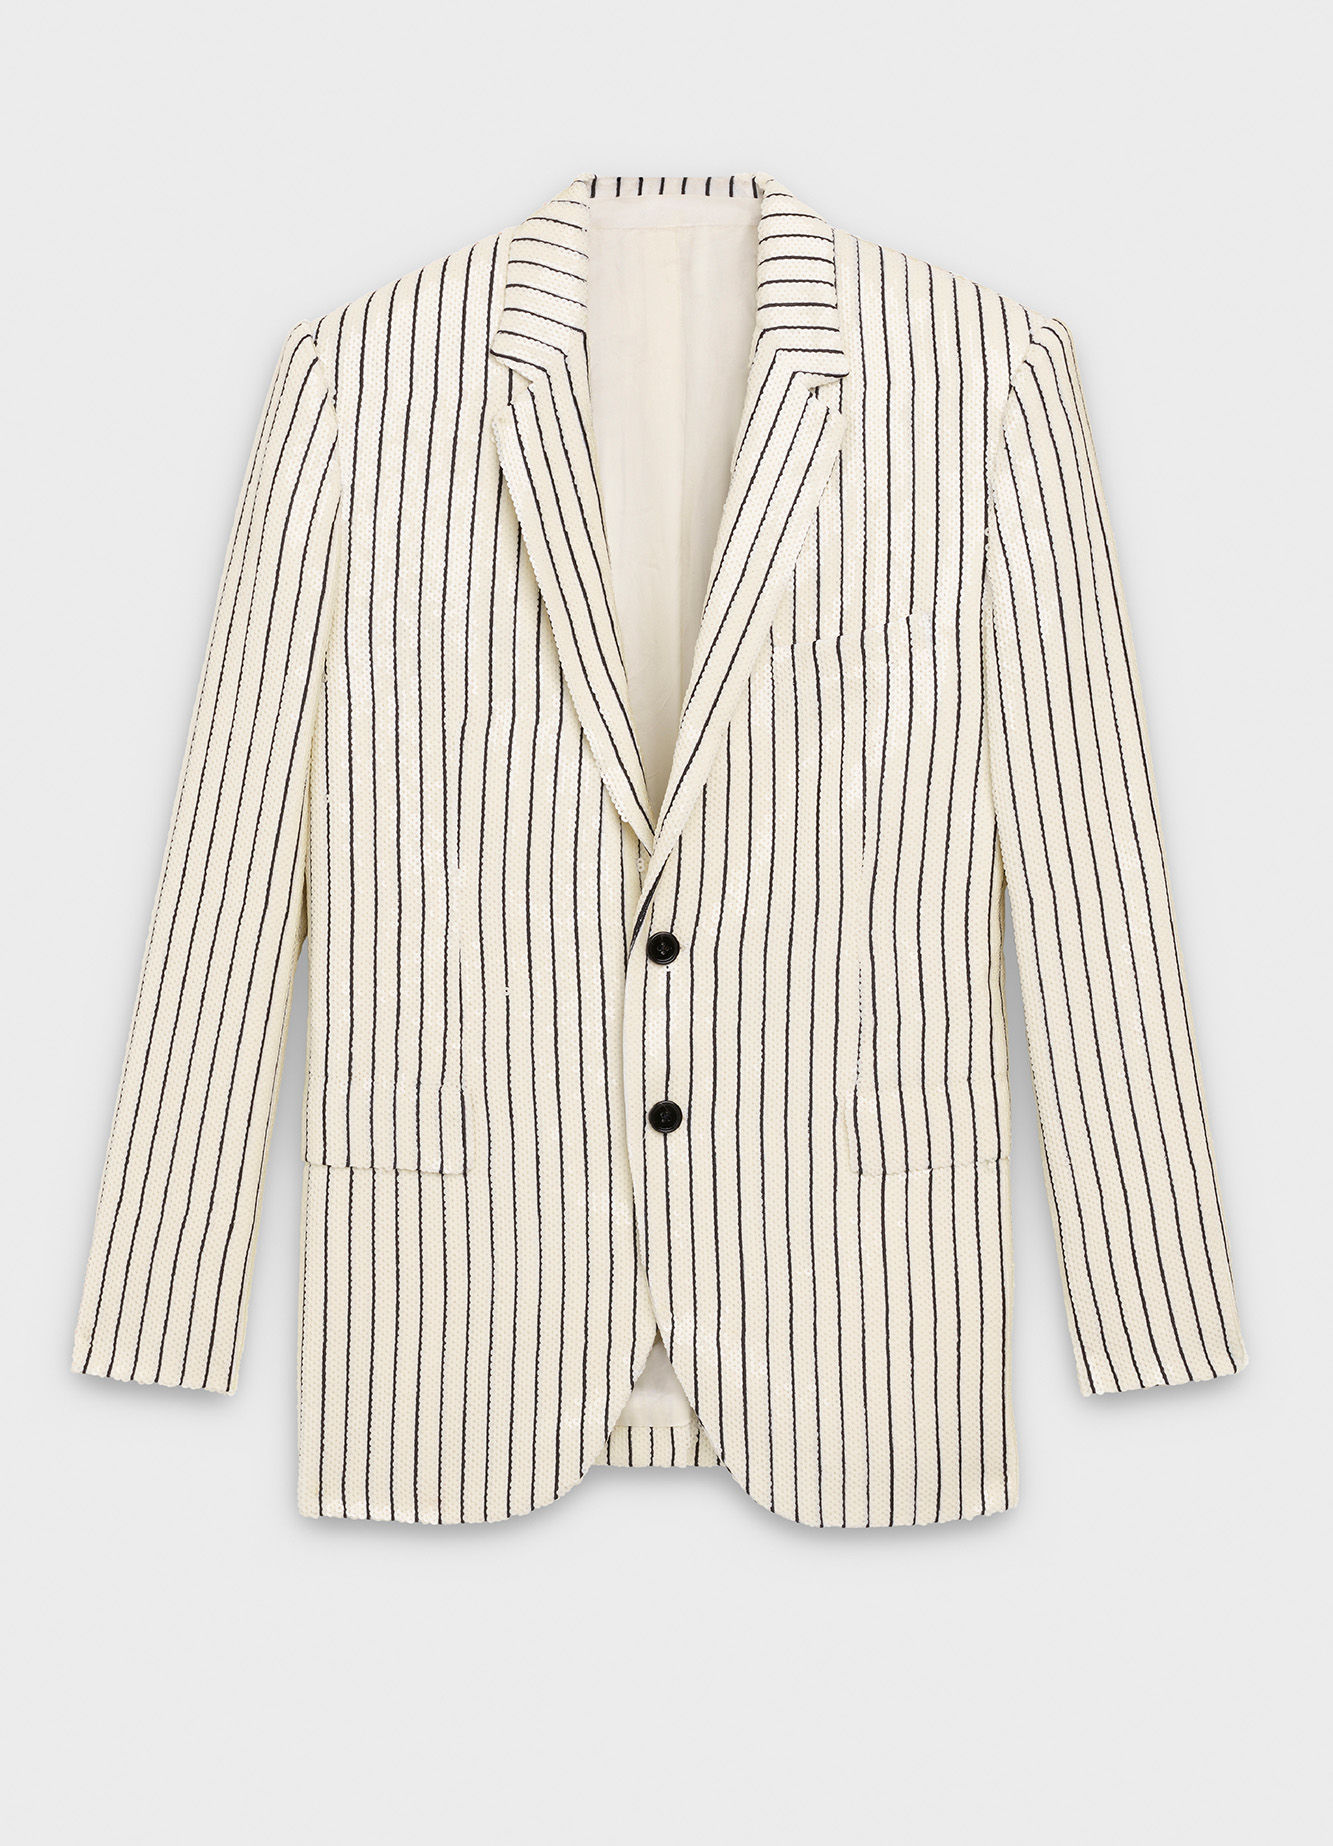 CELINE SEQUINS EMBROIDERED RECTANGLE JACKET IN TENNIS STRIPED WOOL